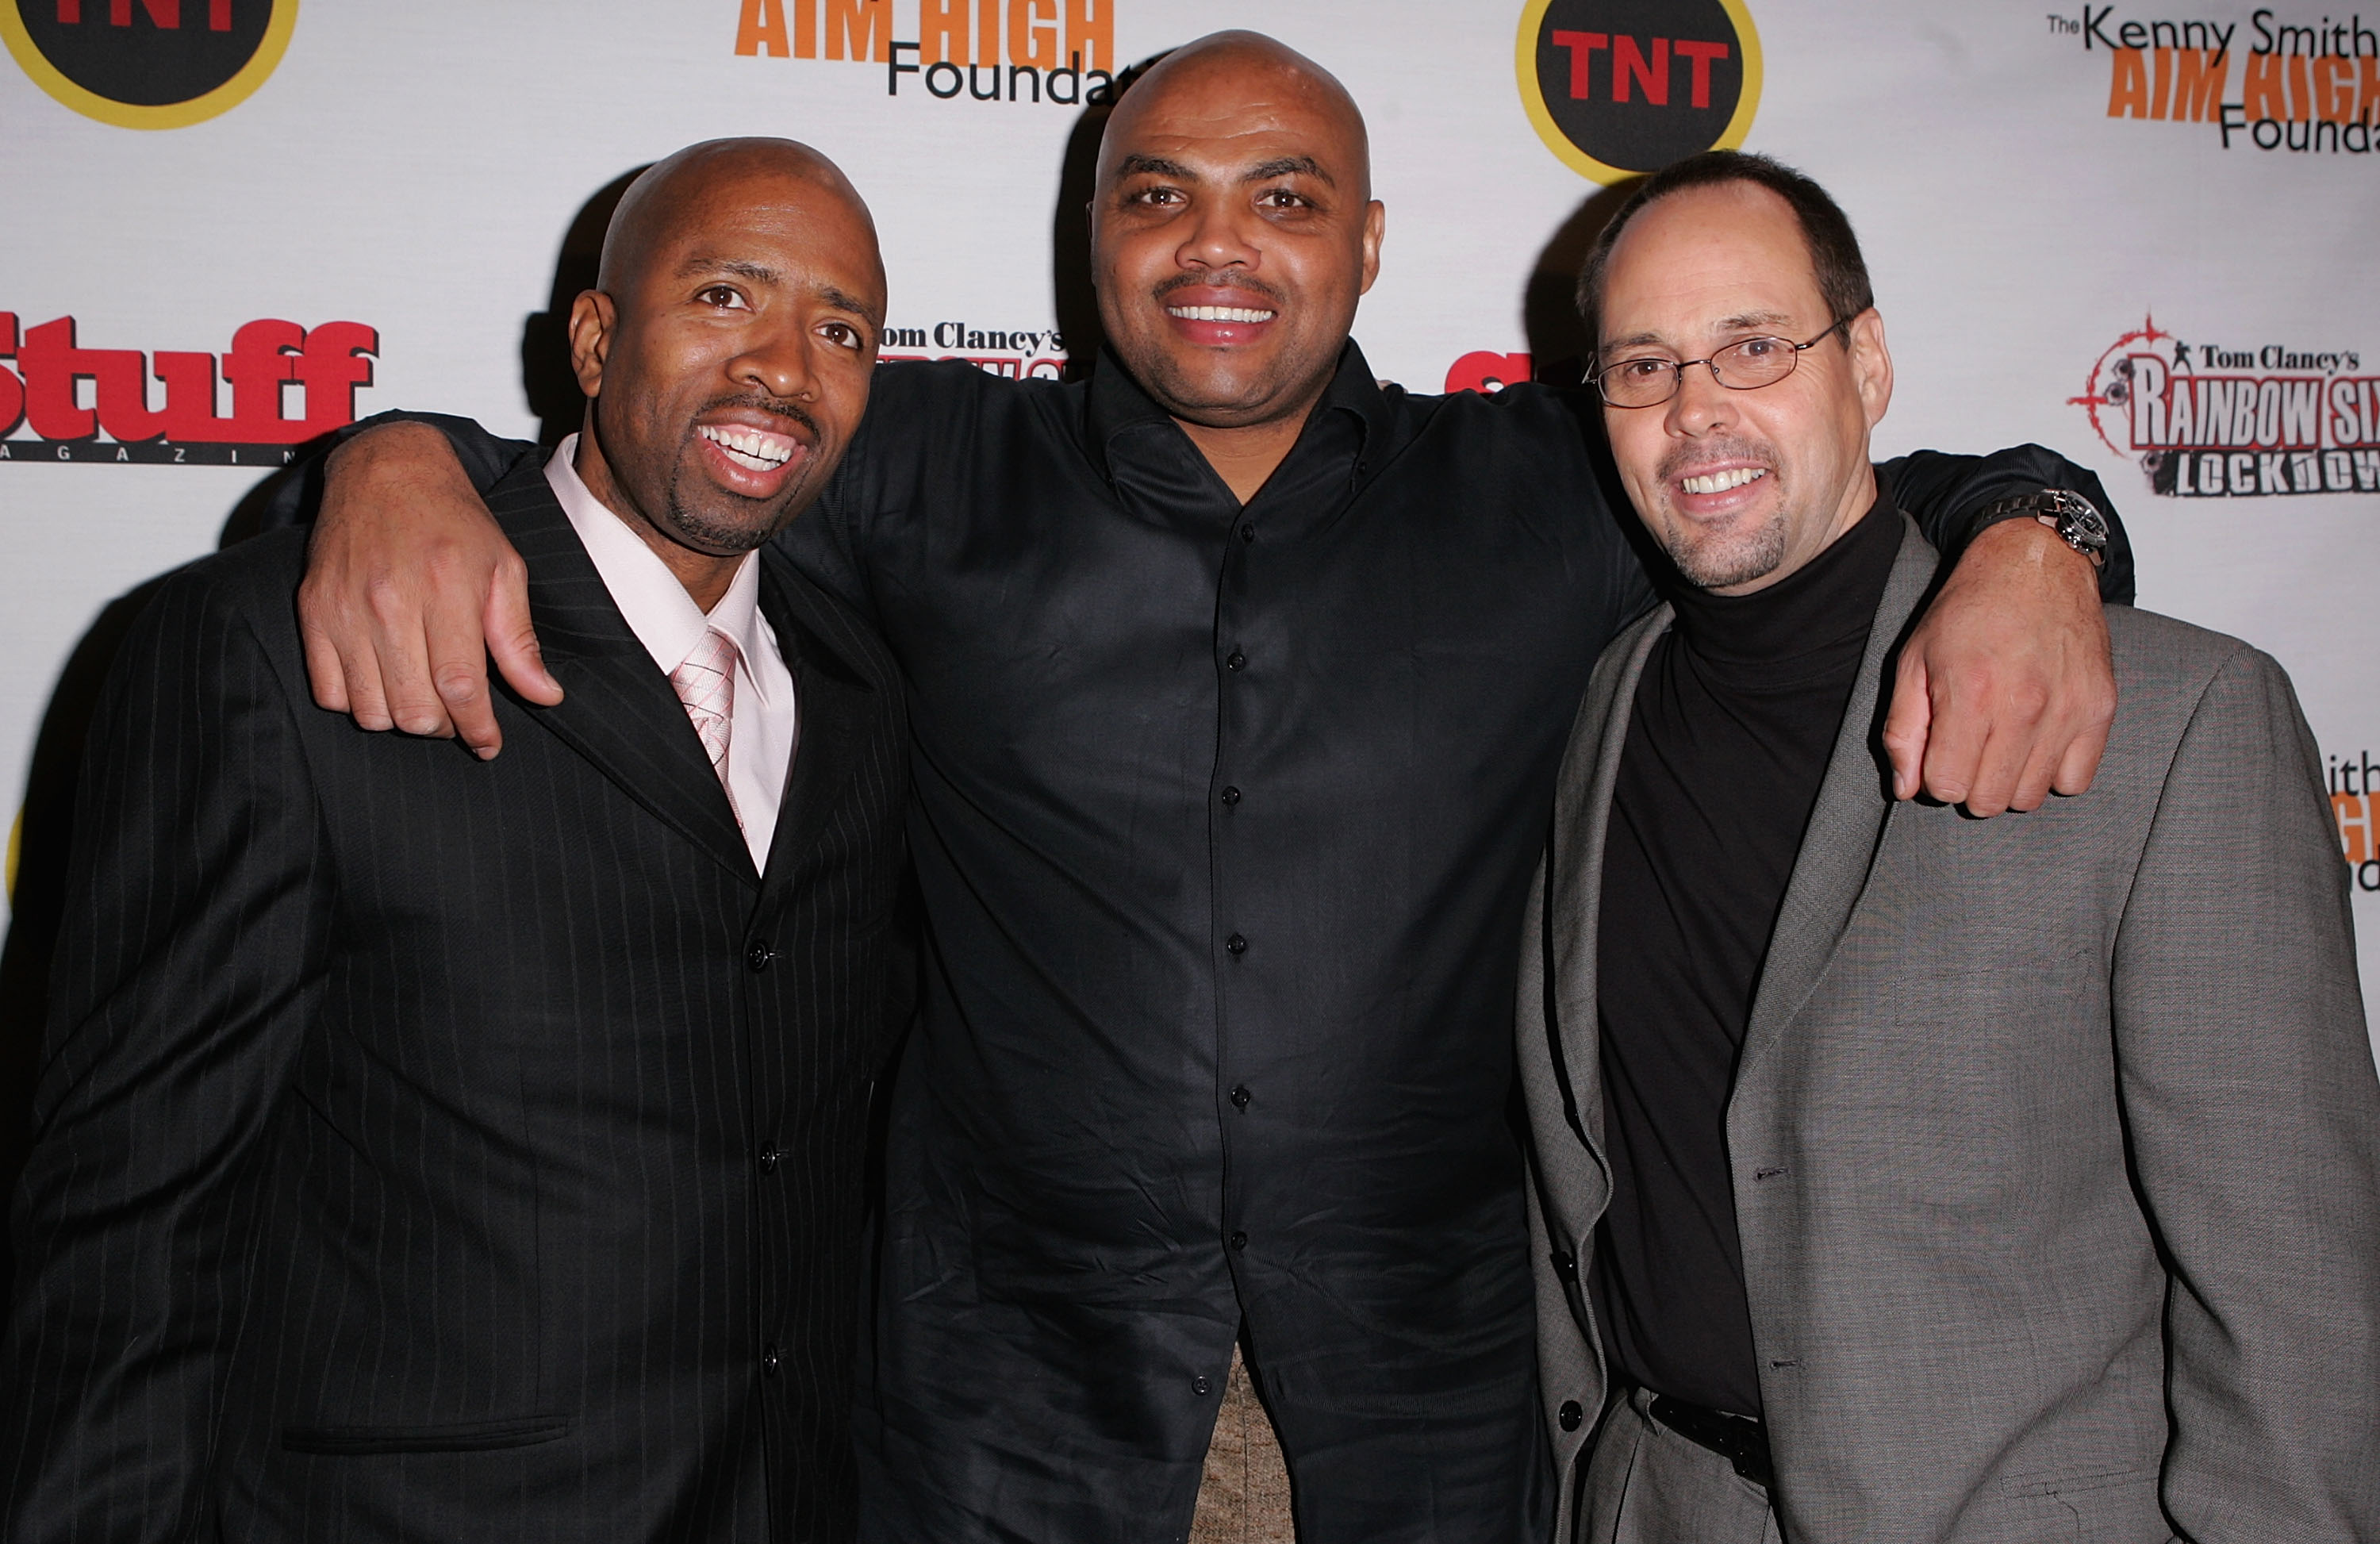 DENVER - FEBRUARY 18:  Kenny Smith, Charles Barkley and guest arrive at Kenny Smith's 2005 All-Star Party on February 18, 2005 in Denver, Colorado.  (Photo By Mark Mainz/Getty Images)